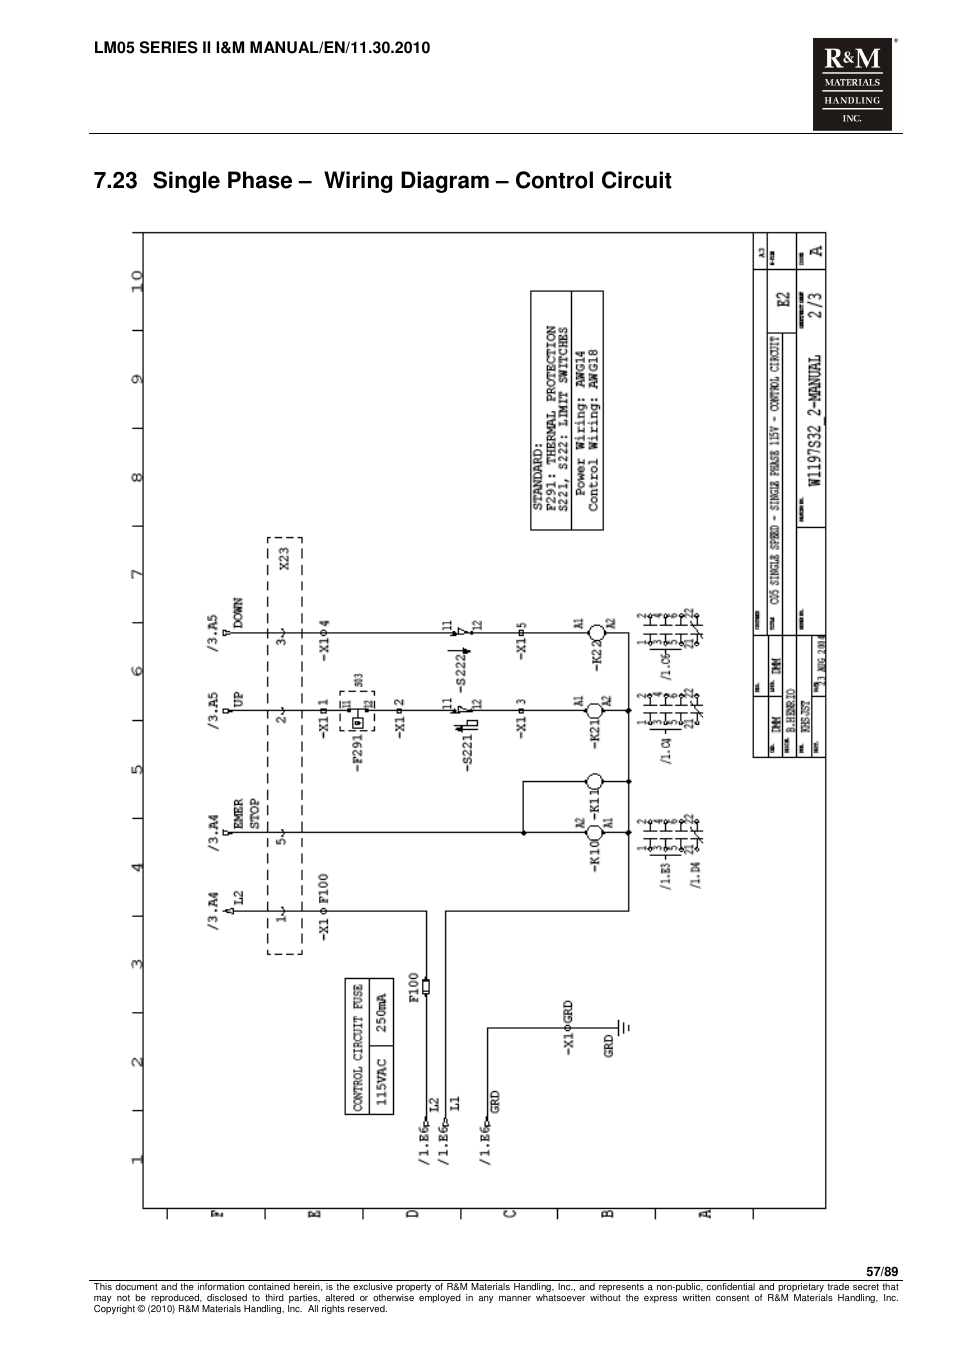 demag dh hoist wiring diagram - somurich.com demag motor wiring diagrams 115 230 on franklin electric motor wiring diagrams #3